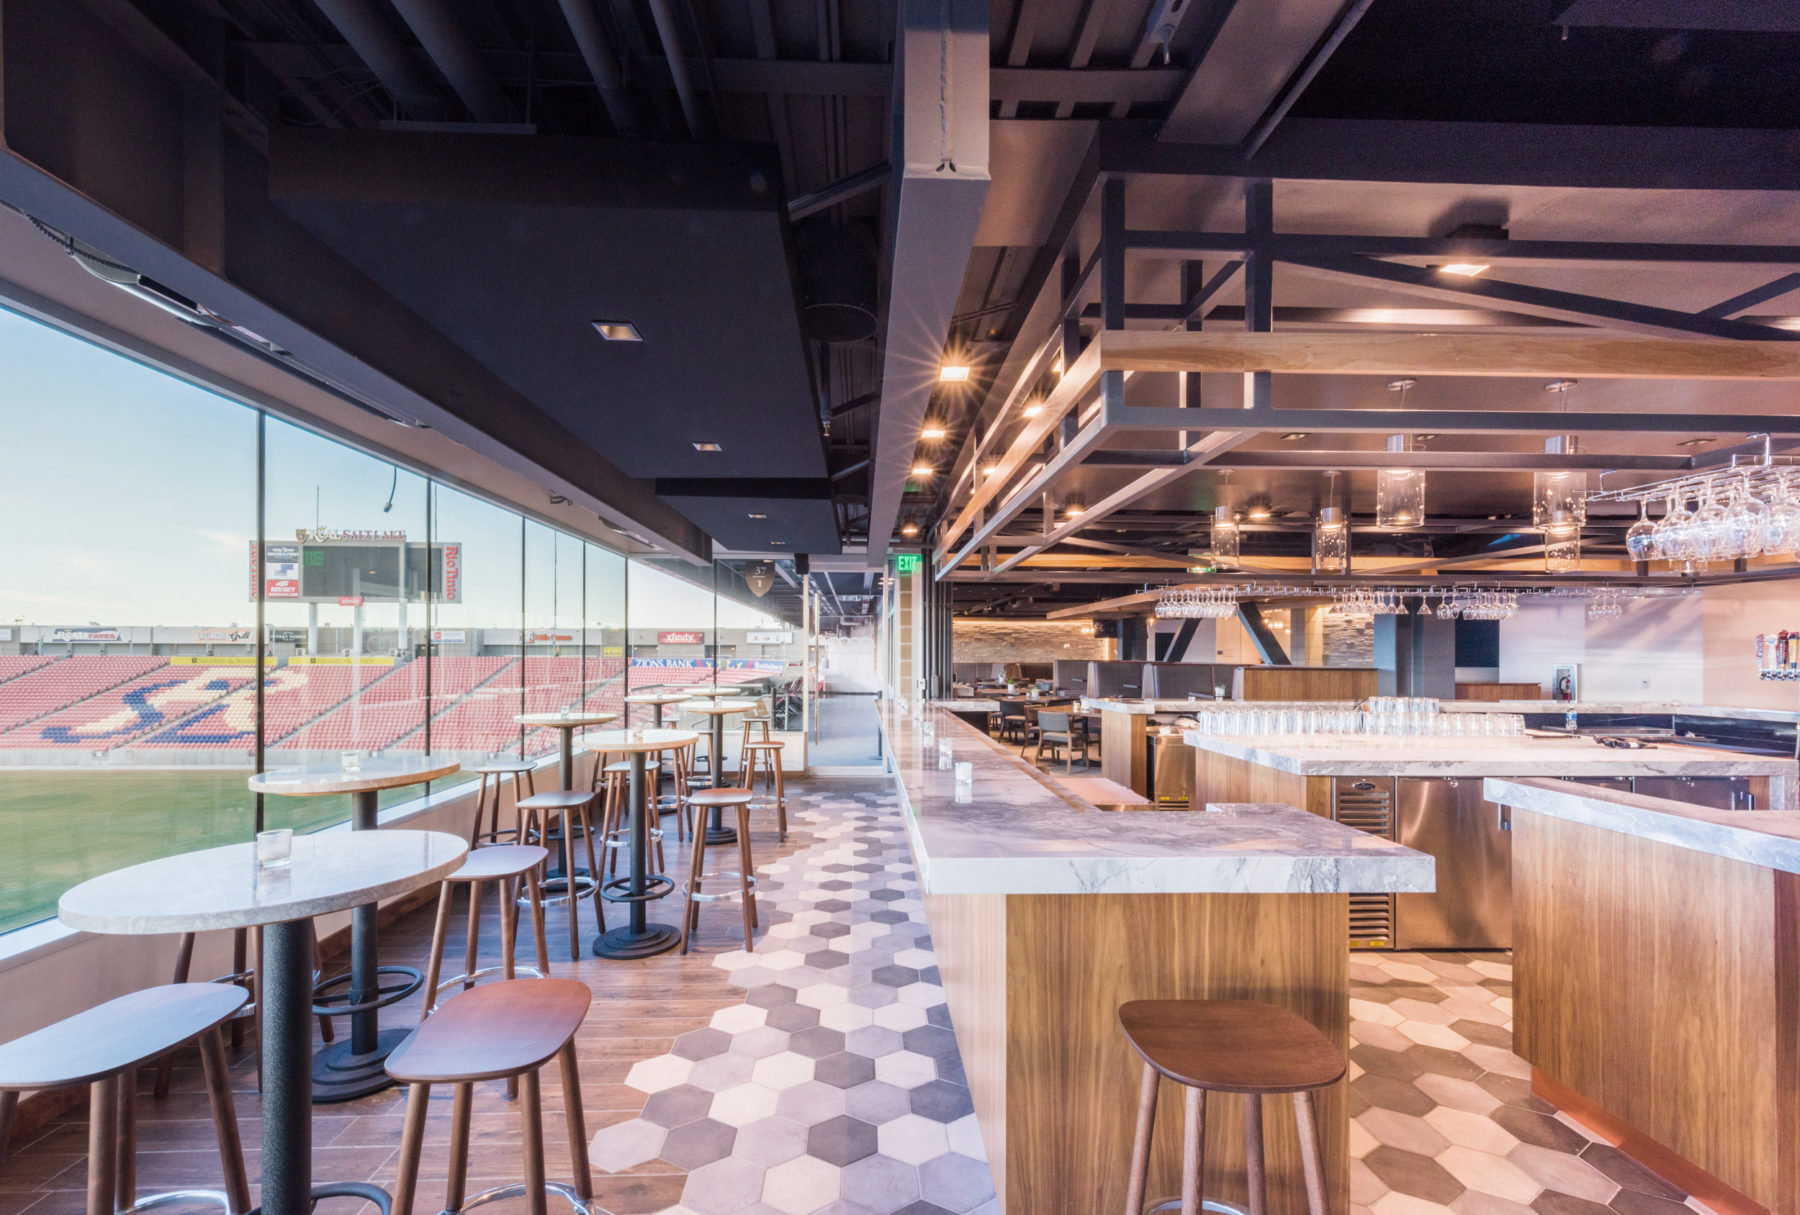 Zagg Brands Executive Club At Rio Tinto Stadium